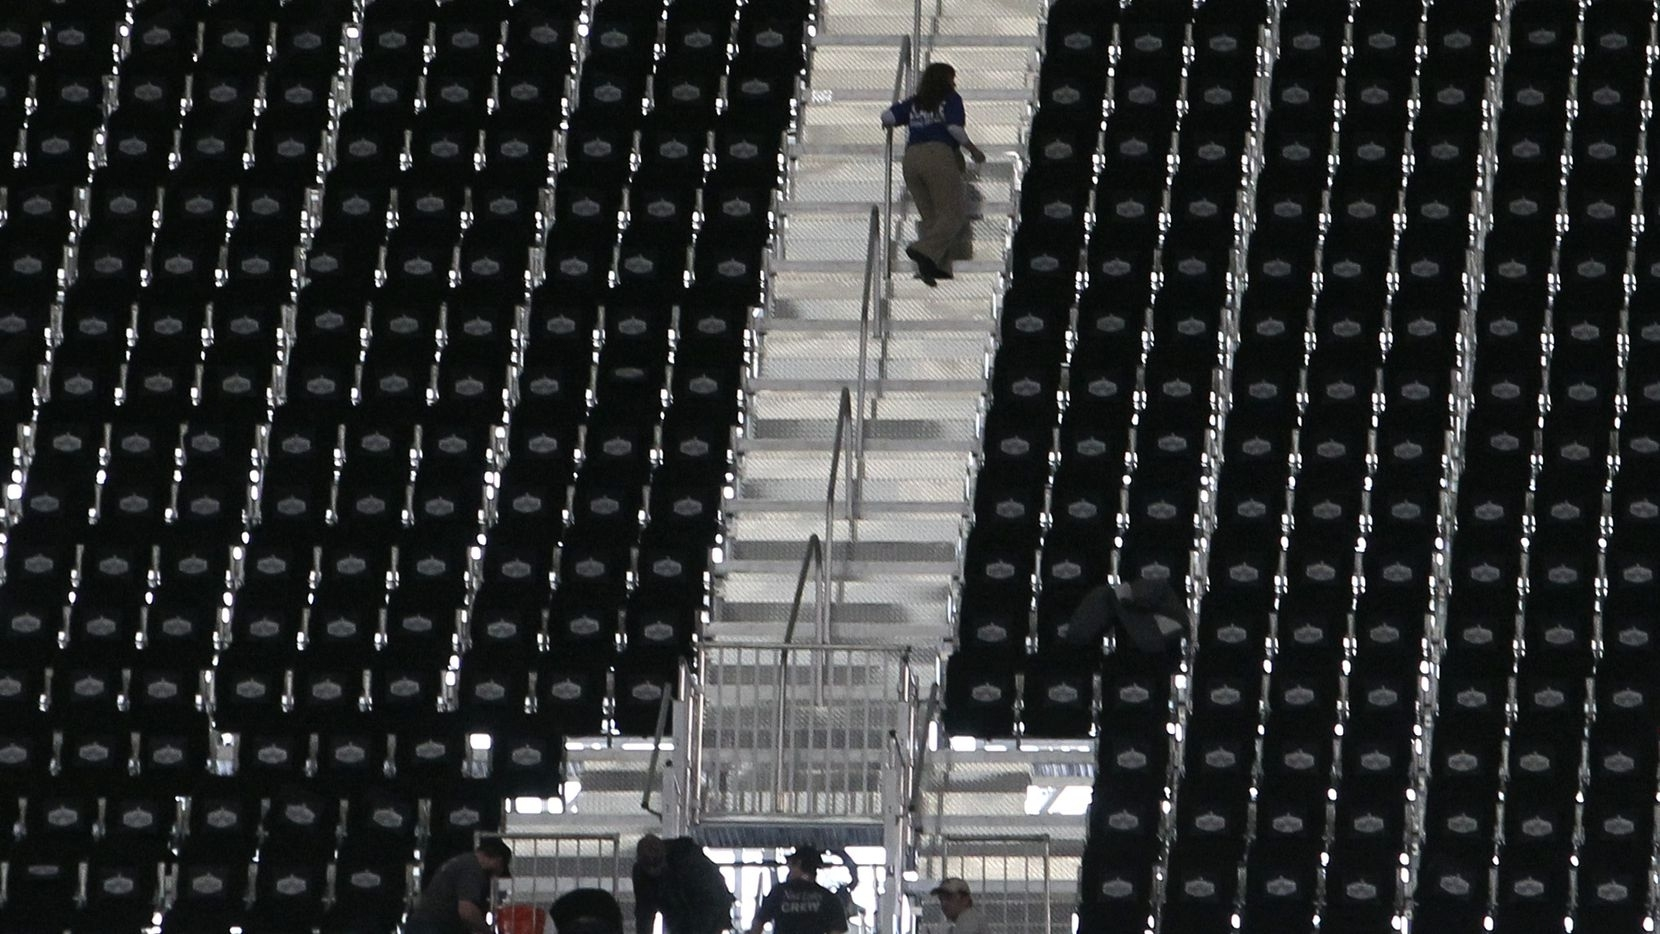 1,250 Fans Displaced After Cowboys Stadium Failed To Have regarding Super Bowl Xlv Seating Problems